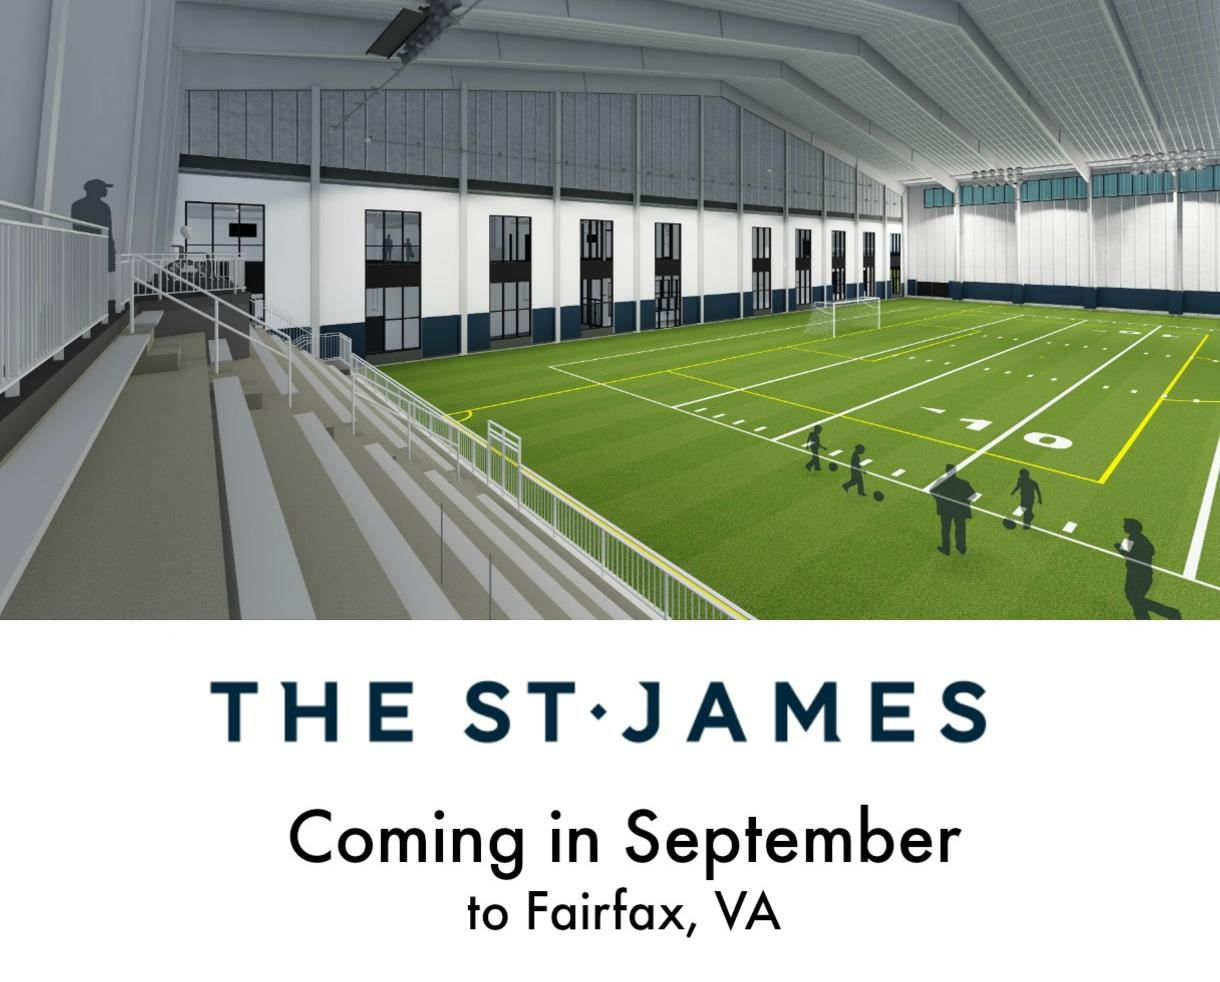 THE ST. JAMES: A One-Stop Destination for Athletes & Sports Enthusiasts